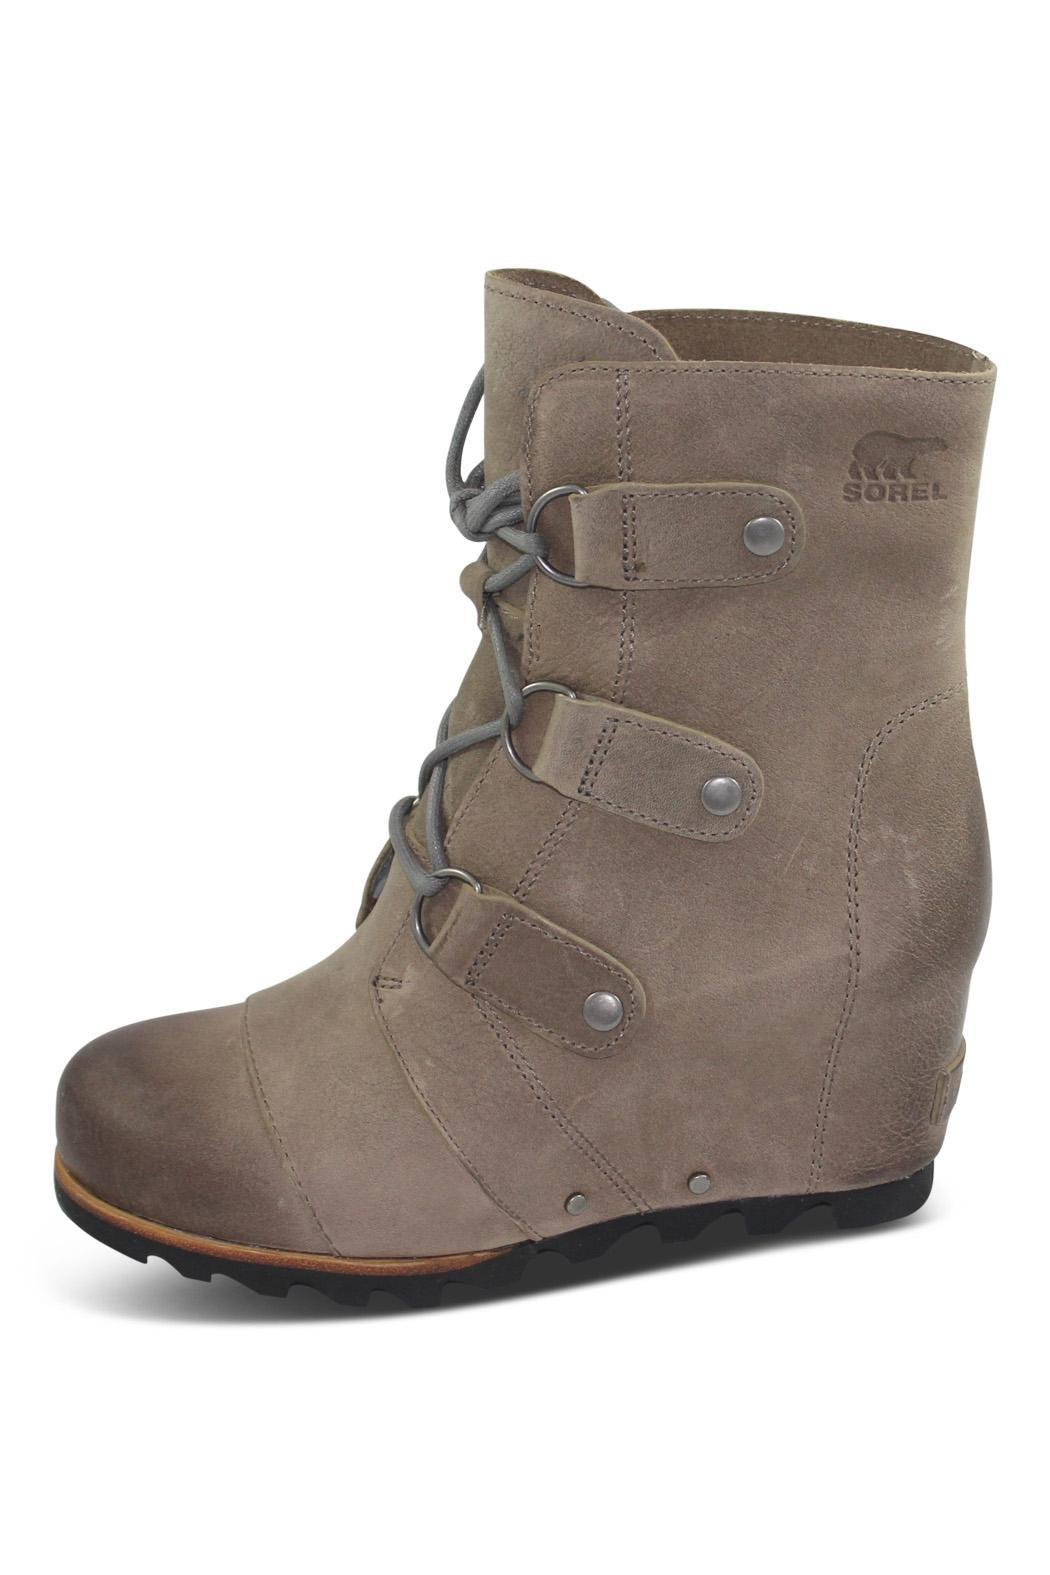 sorel wedge winter boot from columbia by big boot